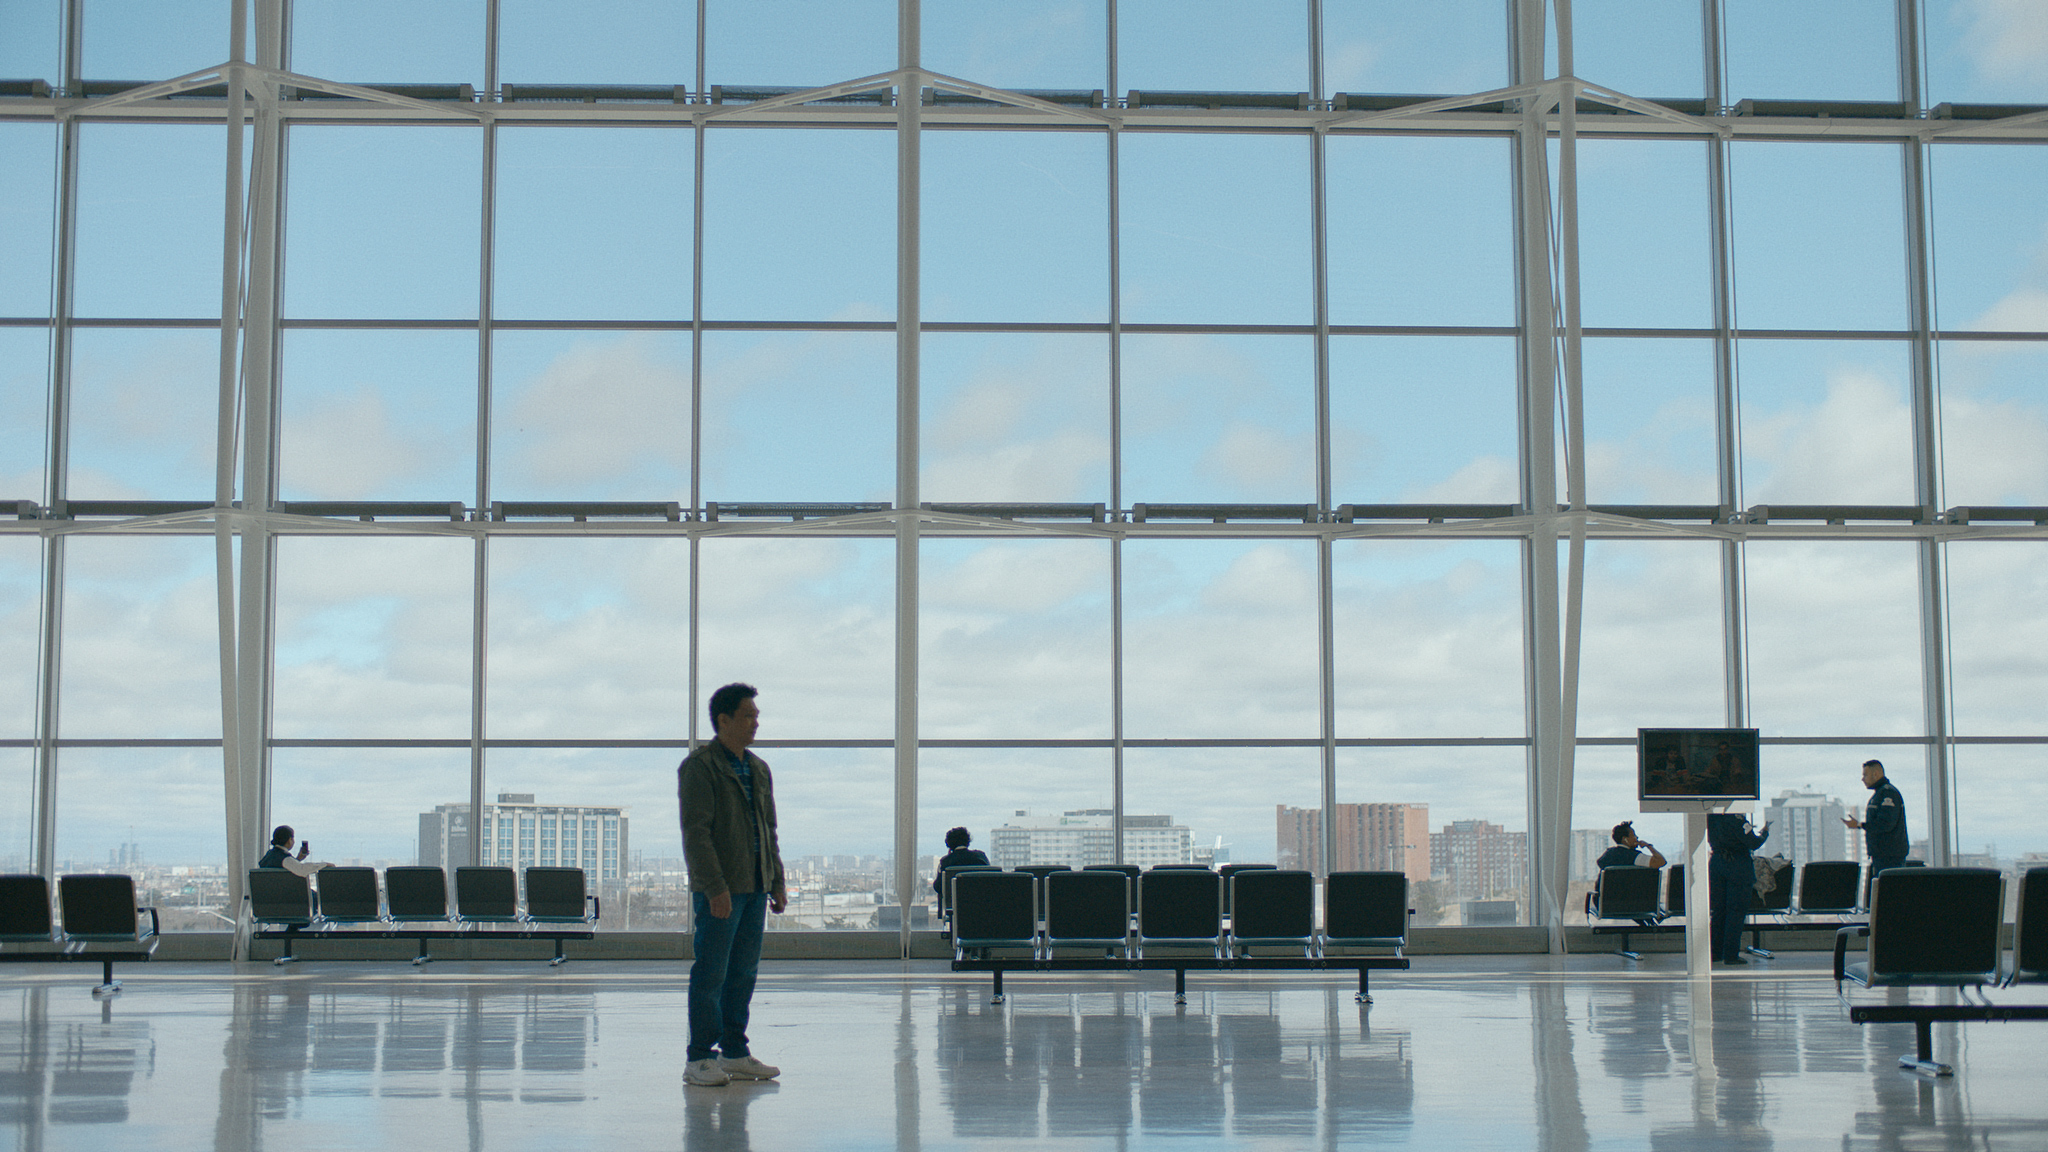 A film still from Islands of a man standing alone in a bright airport terminal in front of a large window. He has black hair and tan skin.